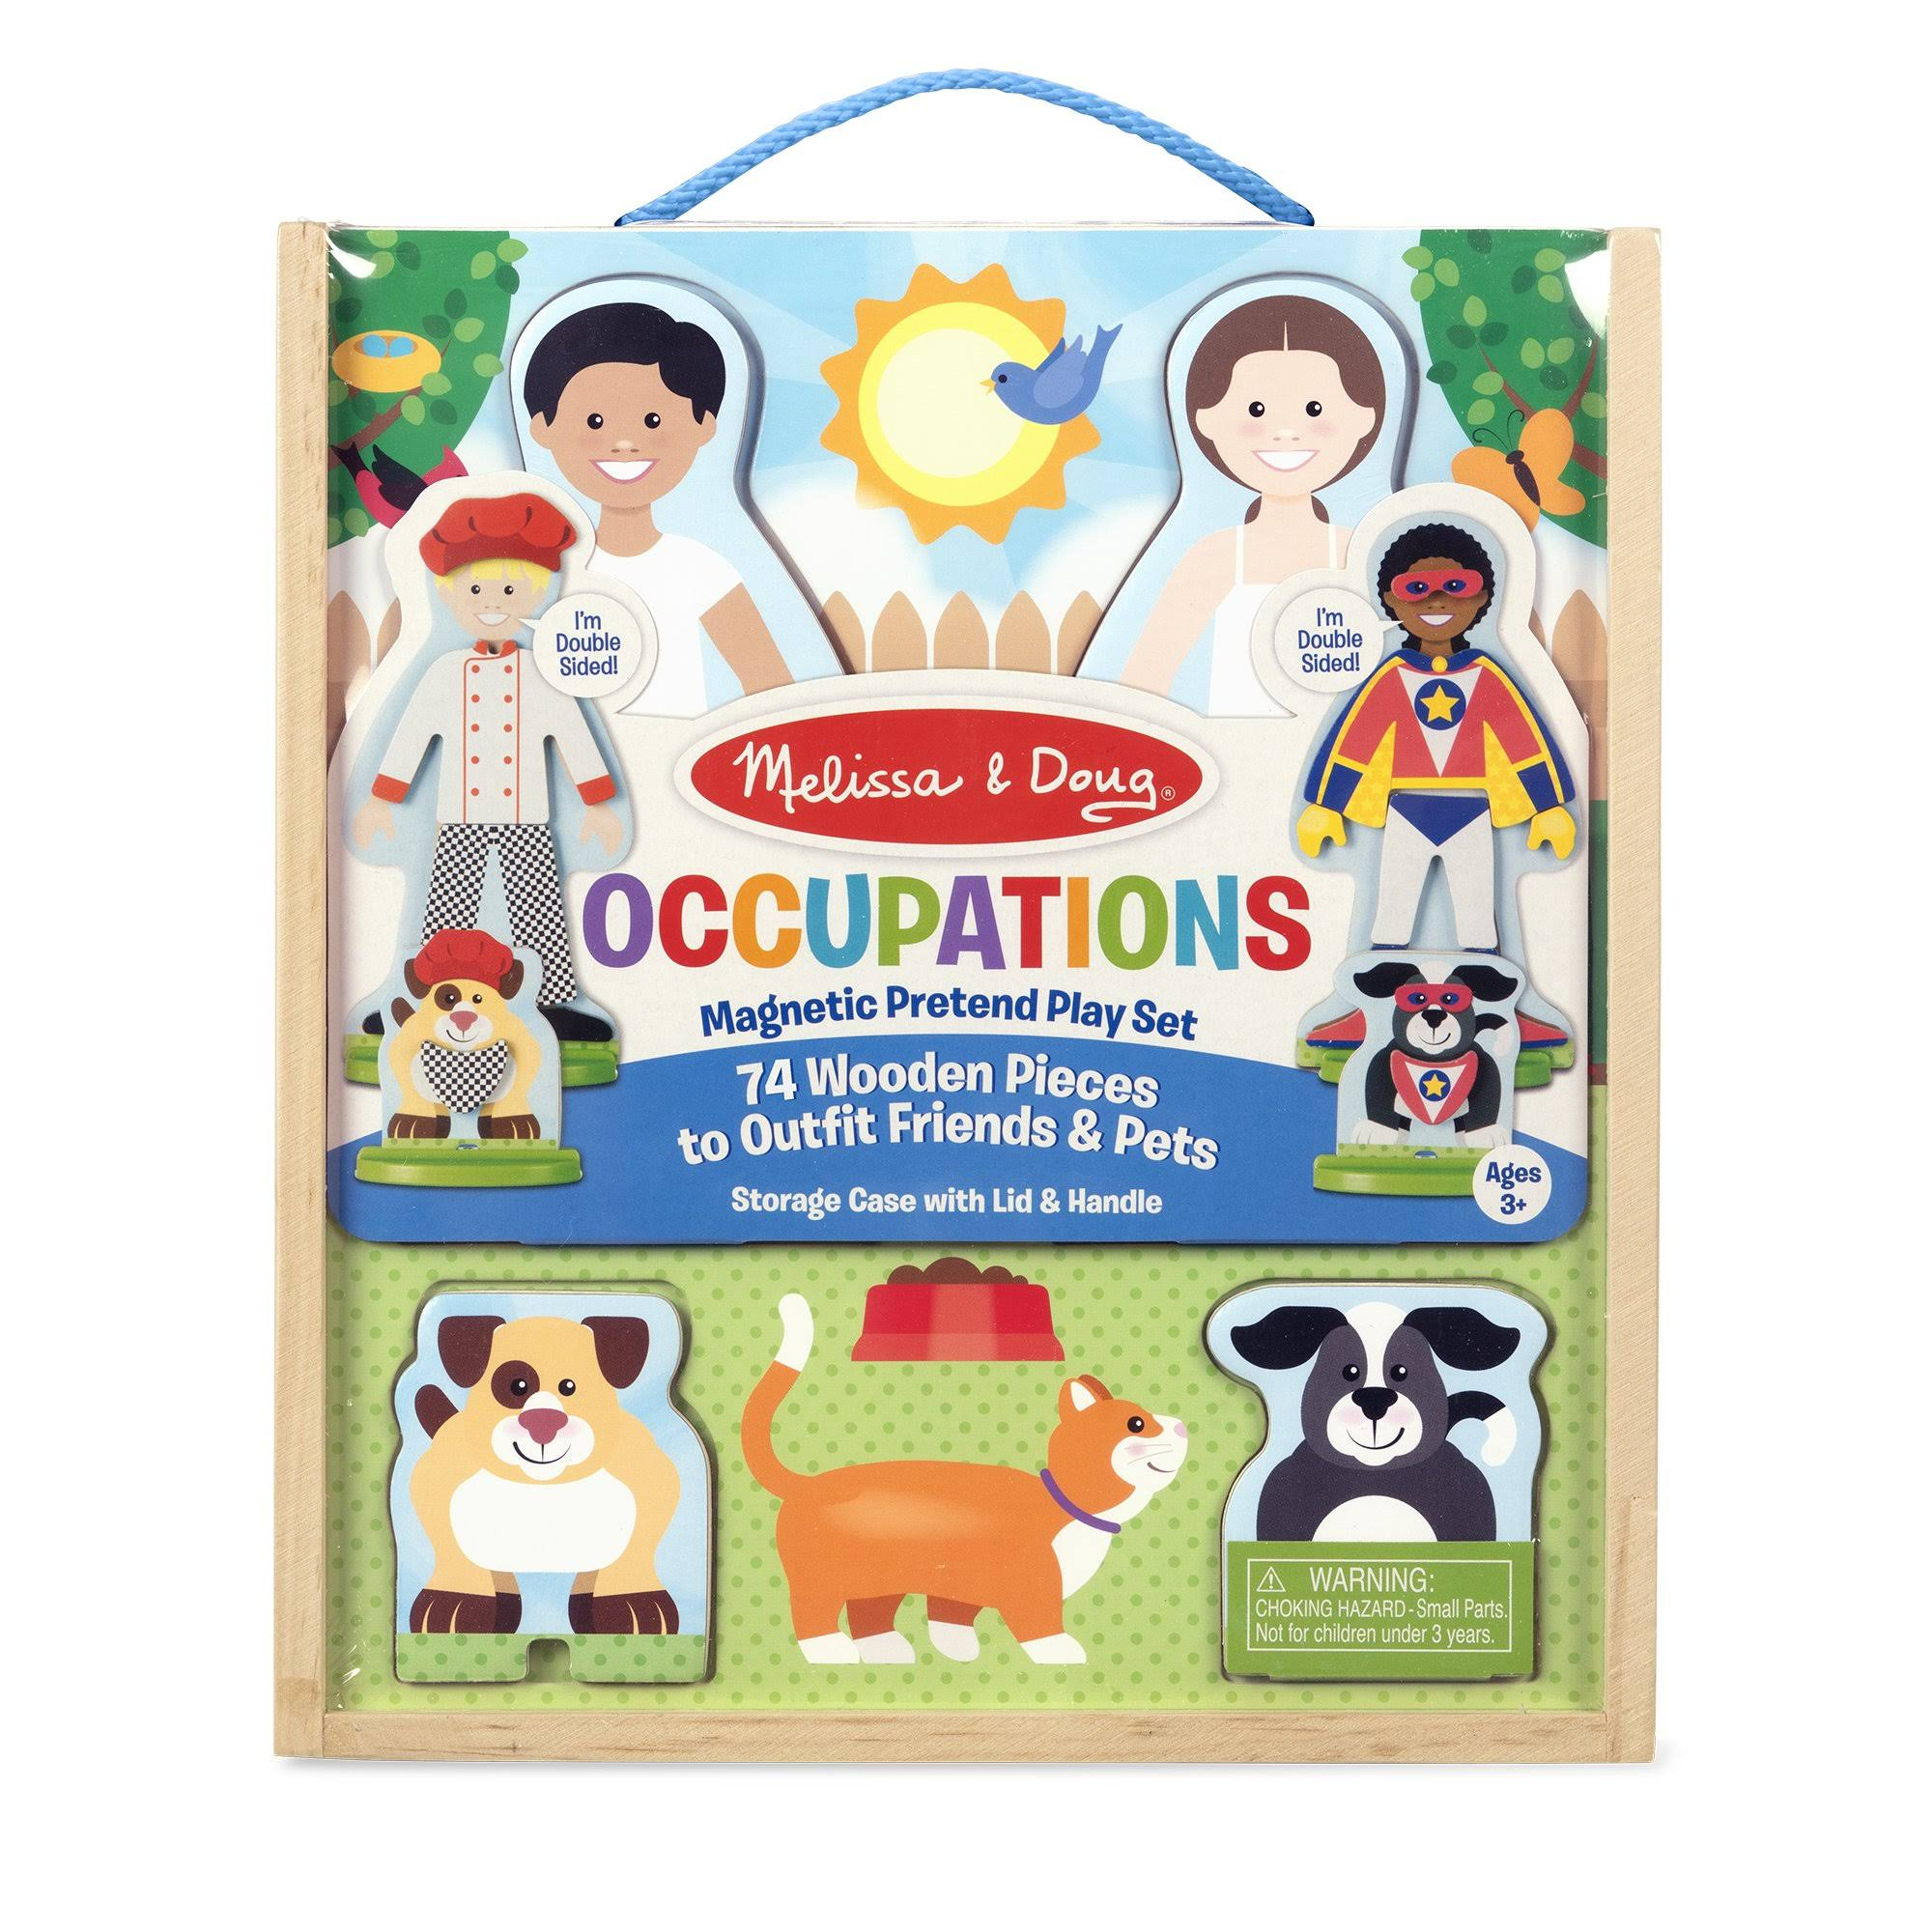 Melissa & Doug - Occupations Magnetic Pretend Play Set